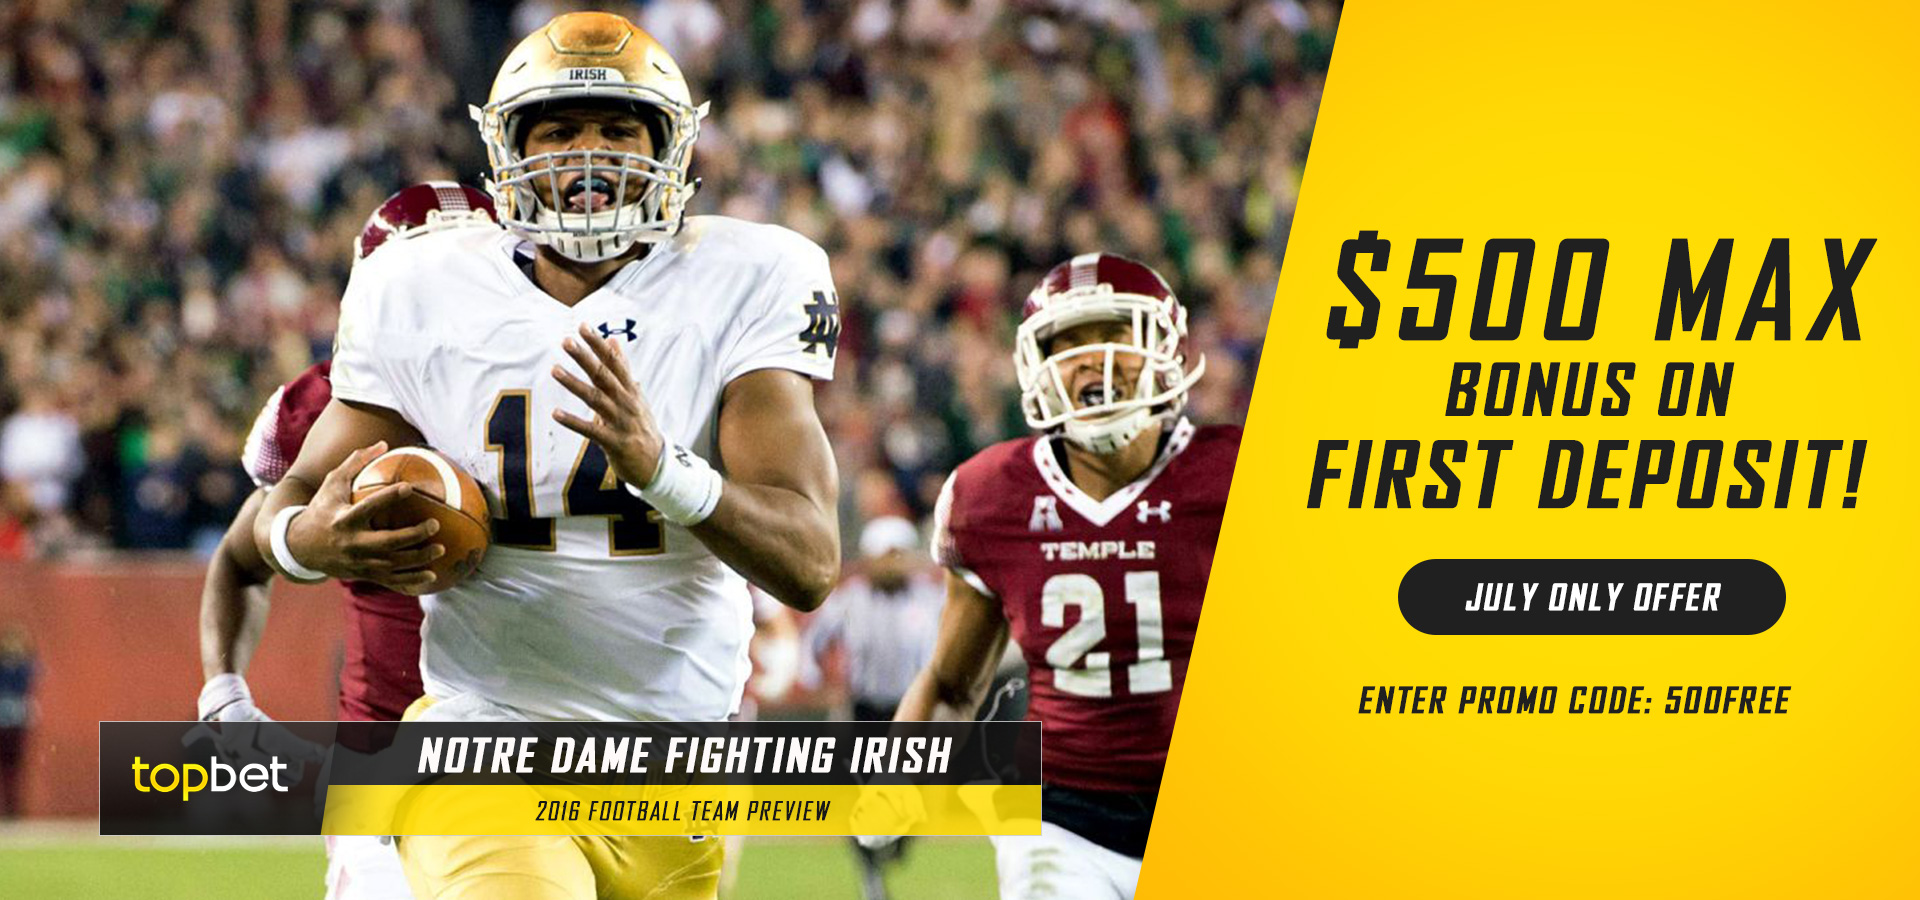 current notre dame score espn.com football scores